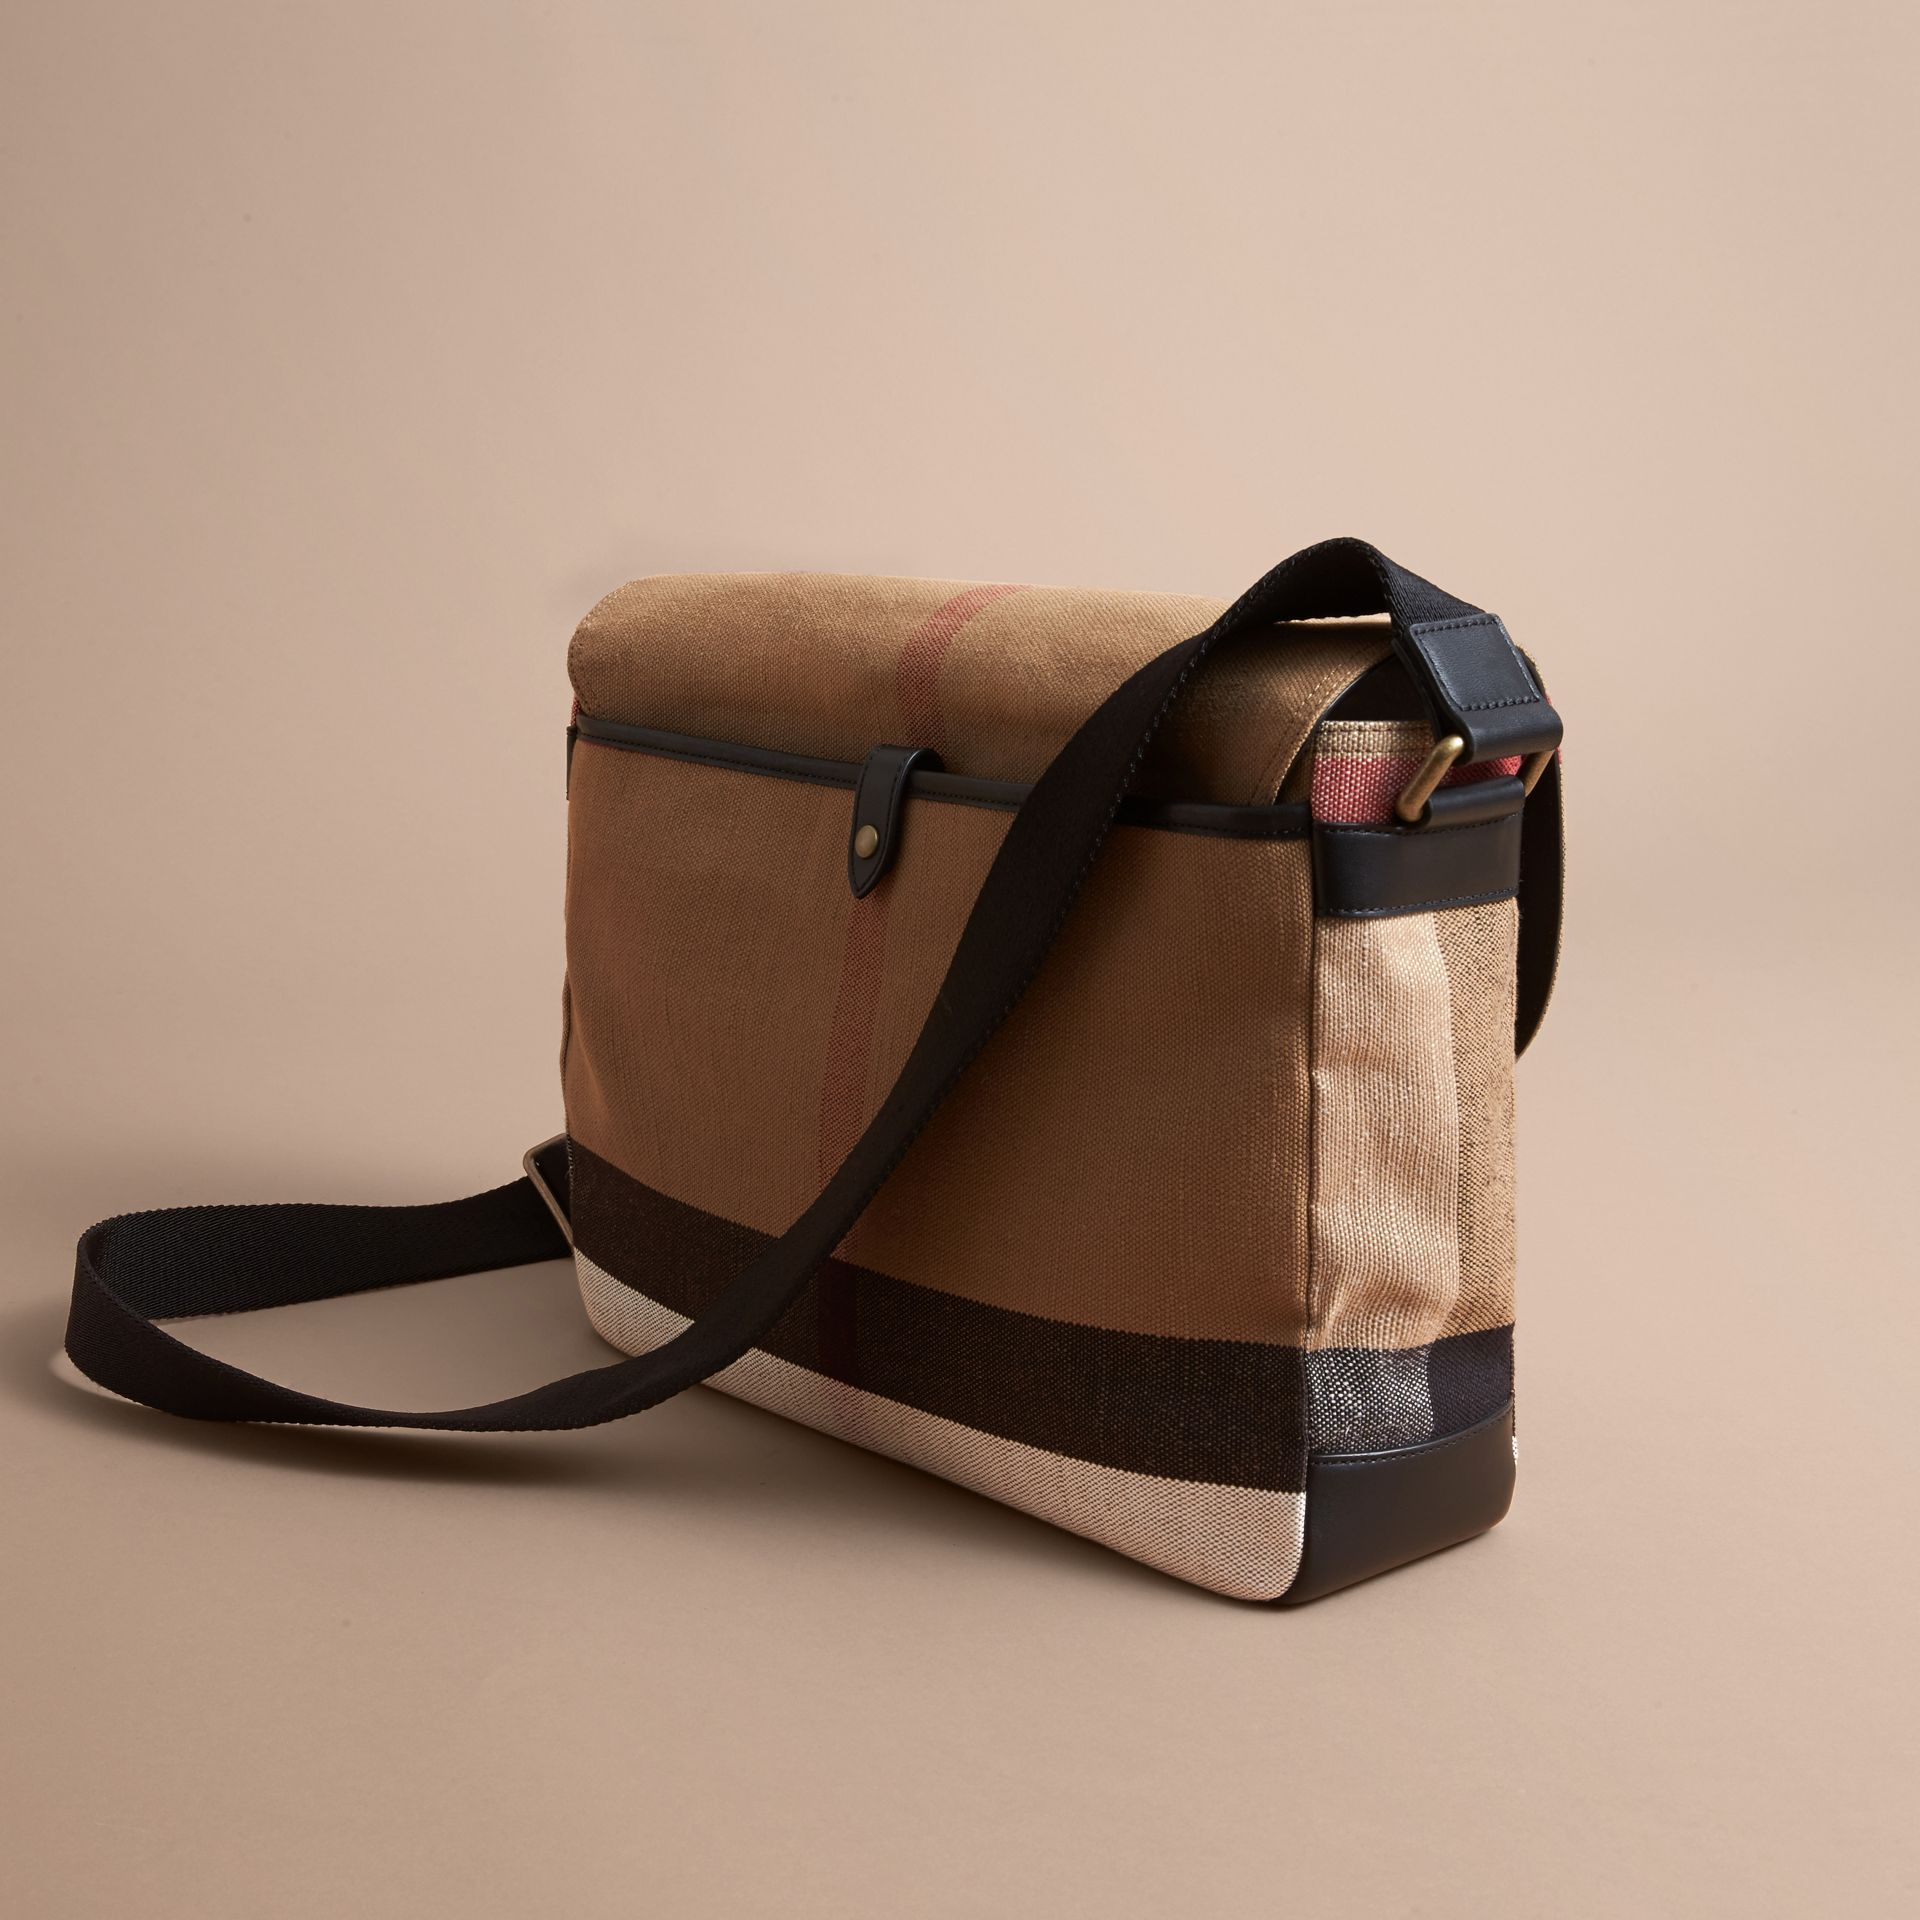 Large Leather Trim Canvas Check Messenger Bag in Black - Men | Burberry - gallery image 3